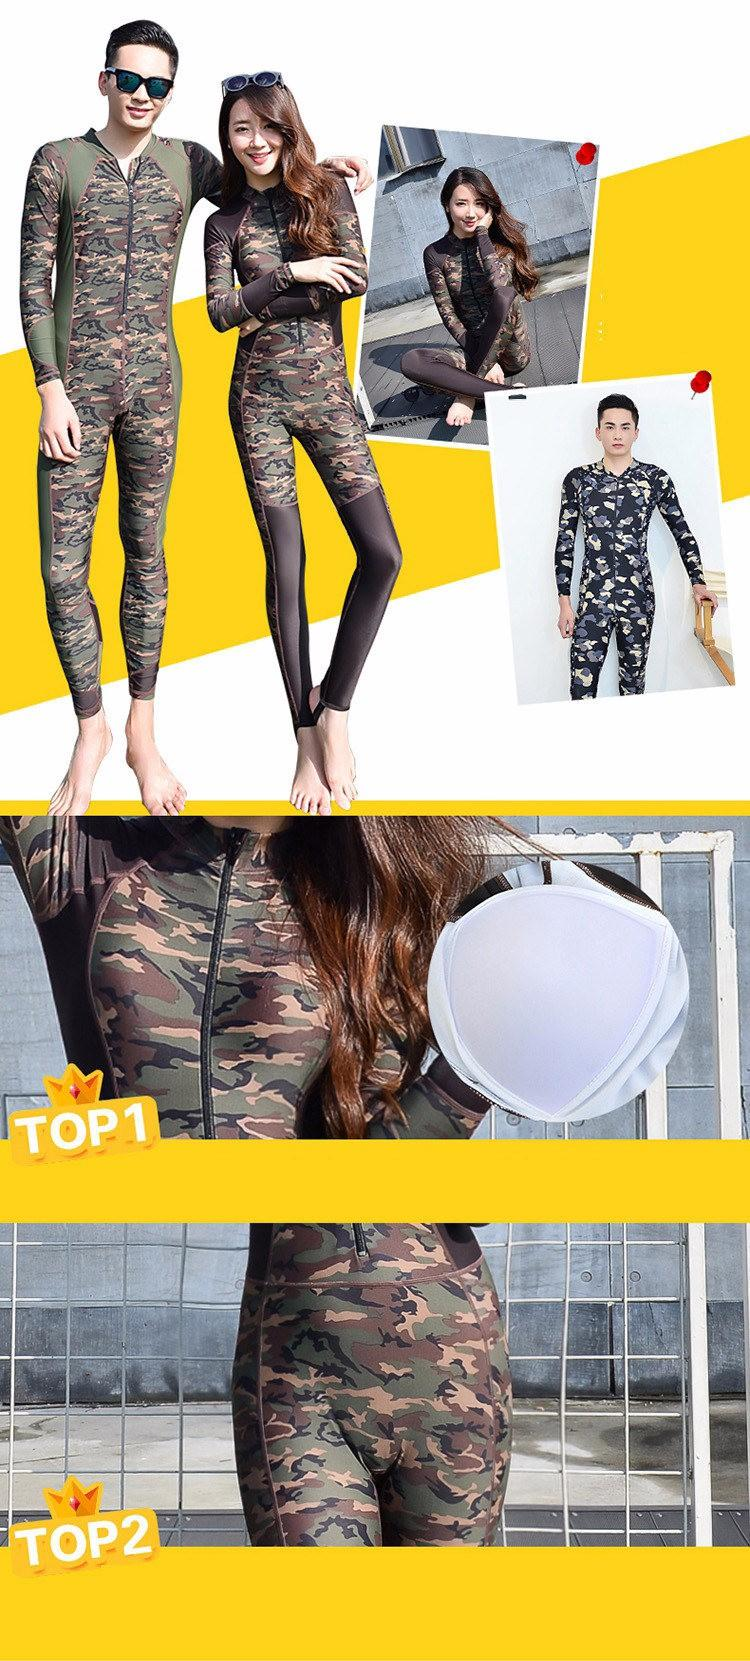 2019 Hot Sale 2016 Fashion Lovers Camouflage Wetsuit Surfing Diving ... 2884ec6b2